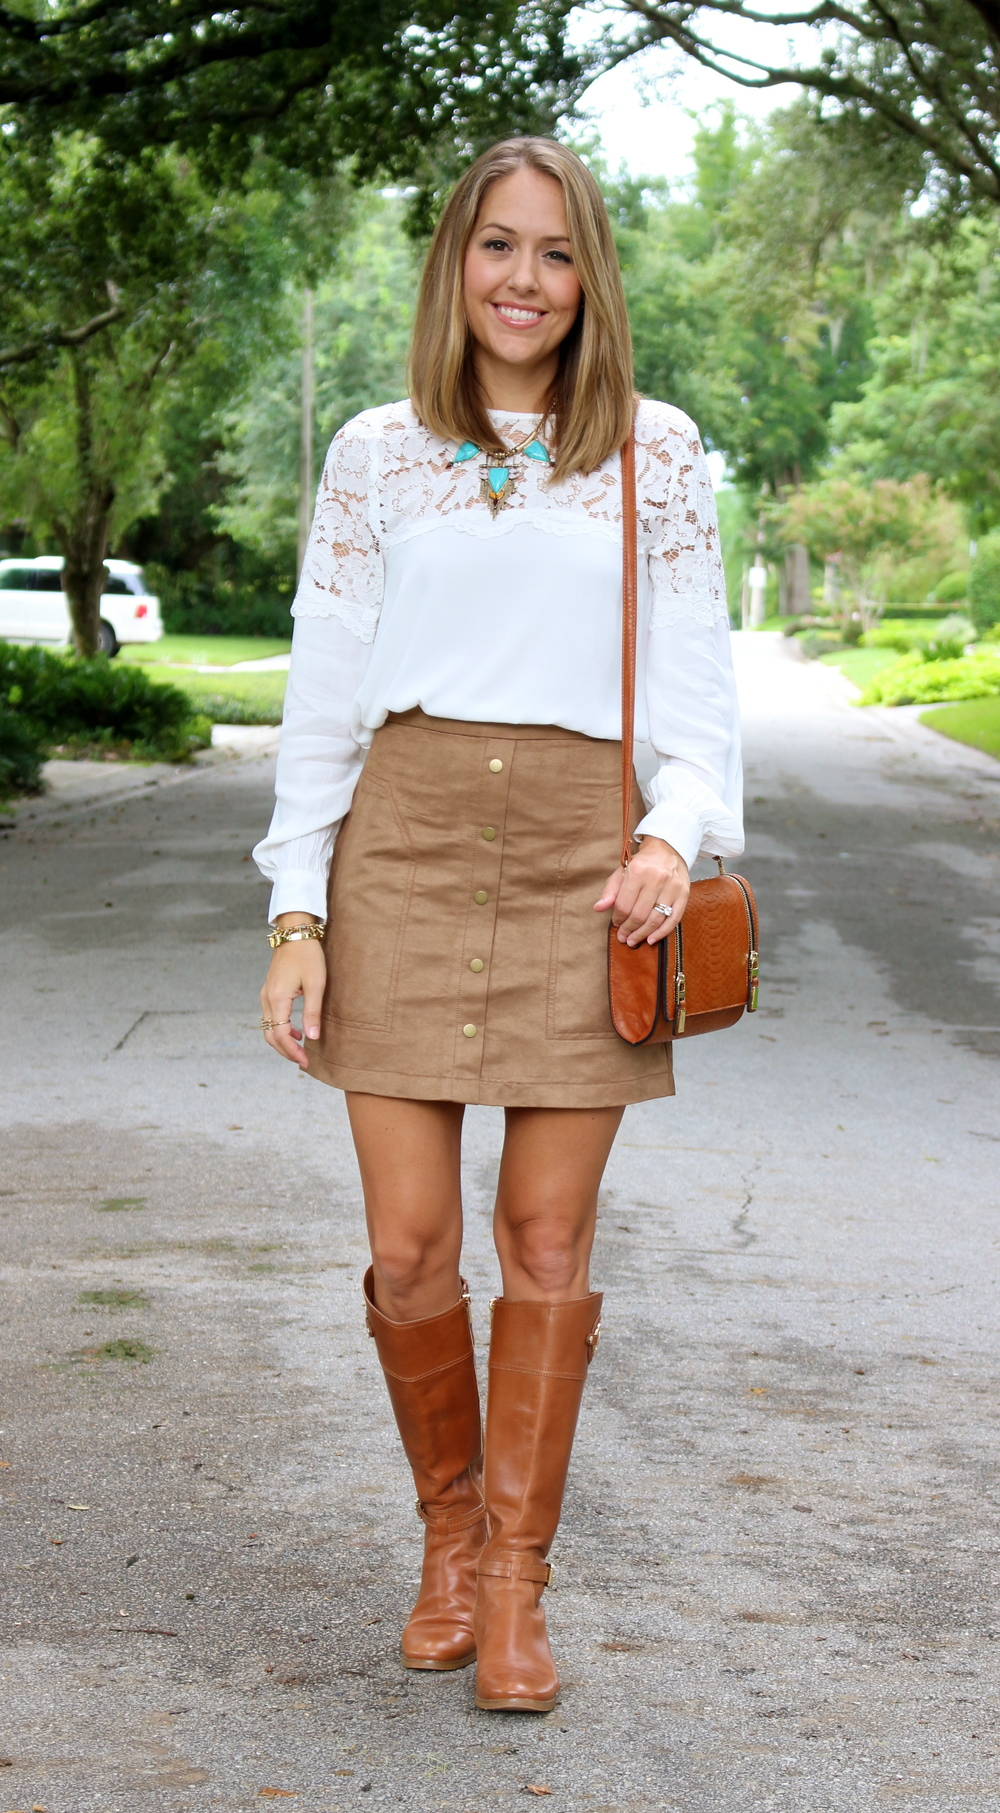 Lace top, suede skirt, turquoise necklace, riding boots